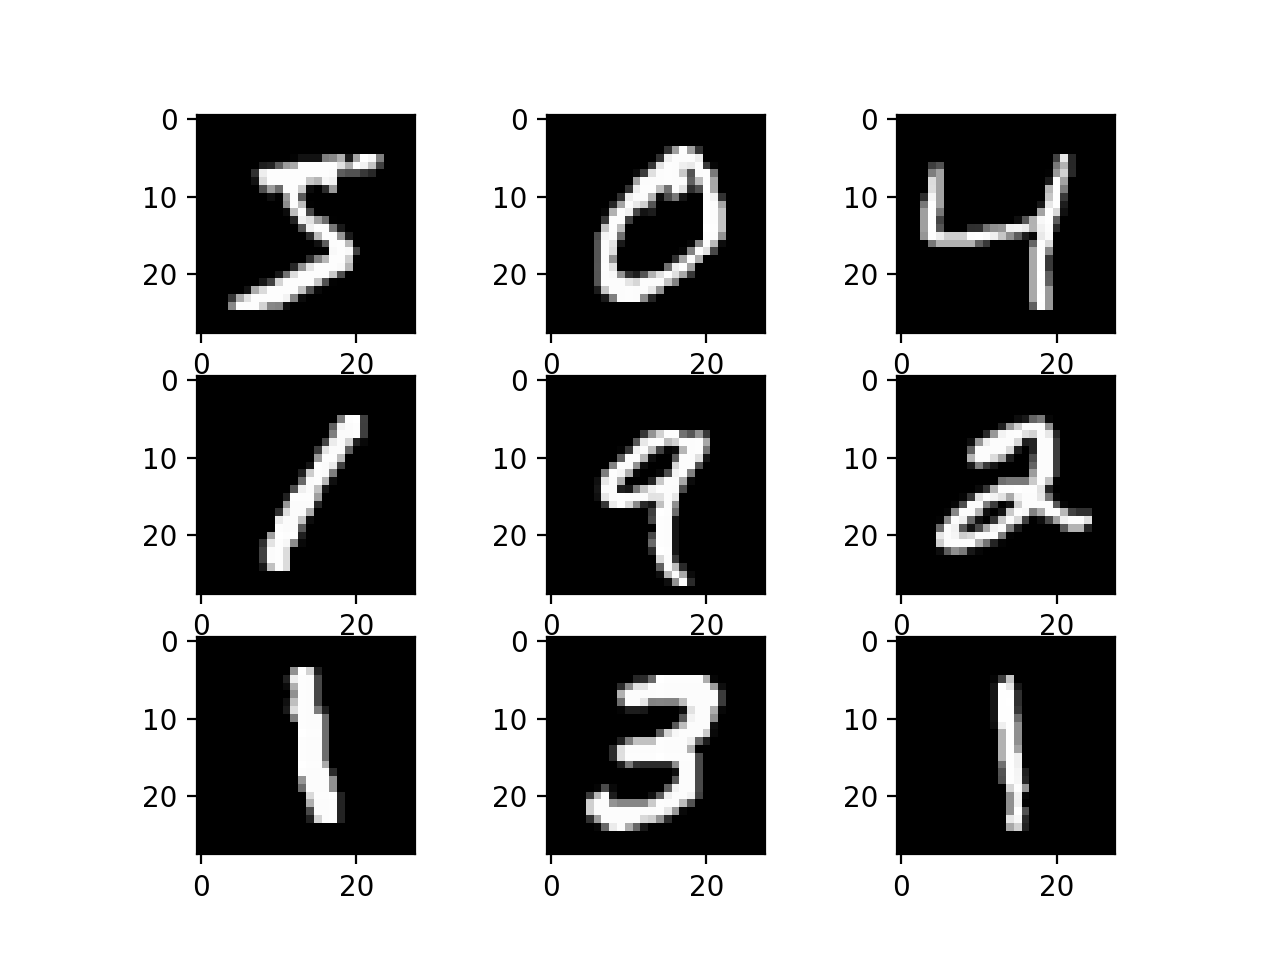 How to Develop a Convolutional Neural Network From Scratch for MNIST Handwritten Digit Classification